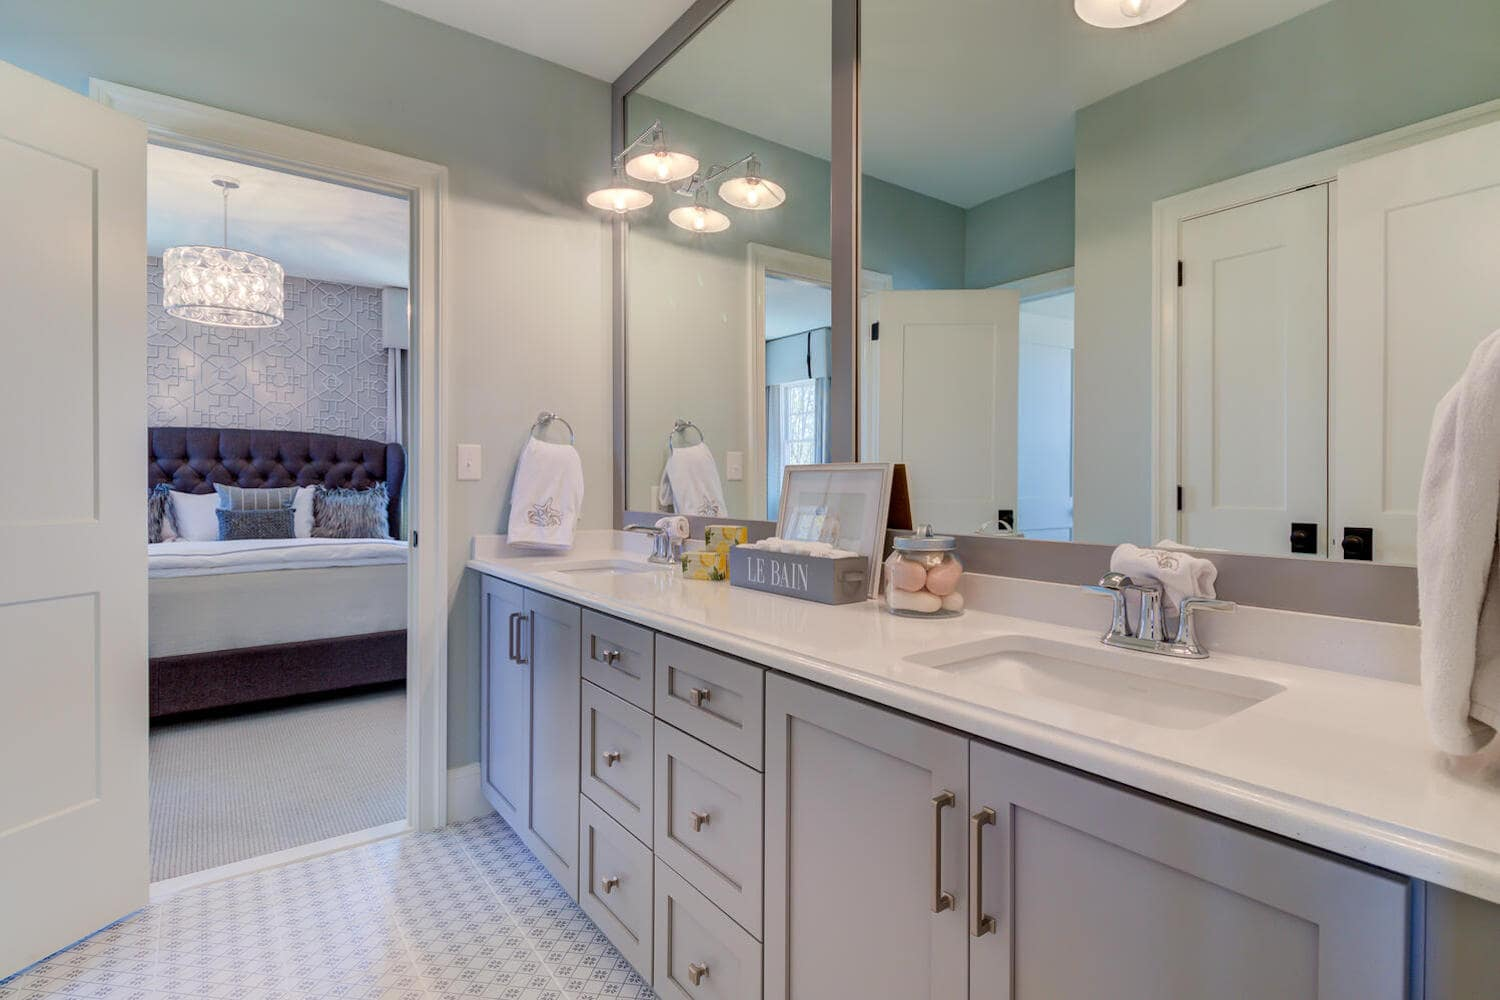 Master bathroom vanity in a new home from Bentley Homes.